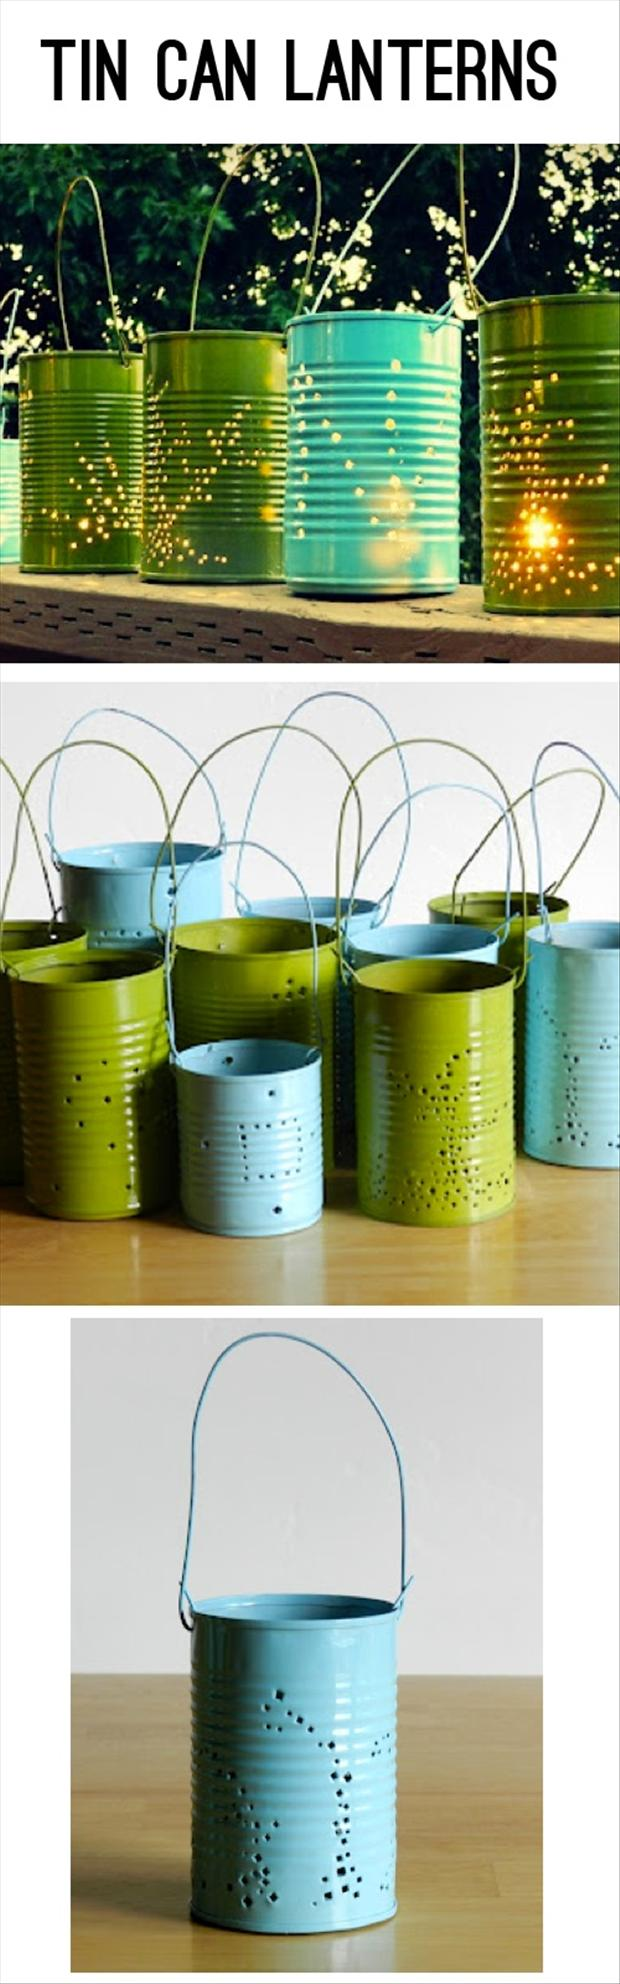 tin can lanterns, do it yourself crafts